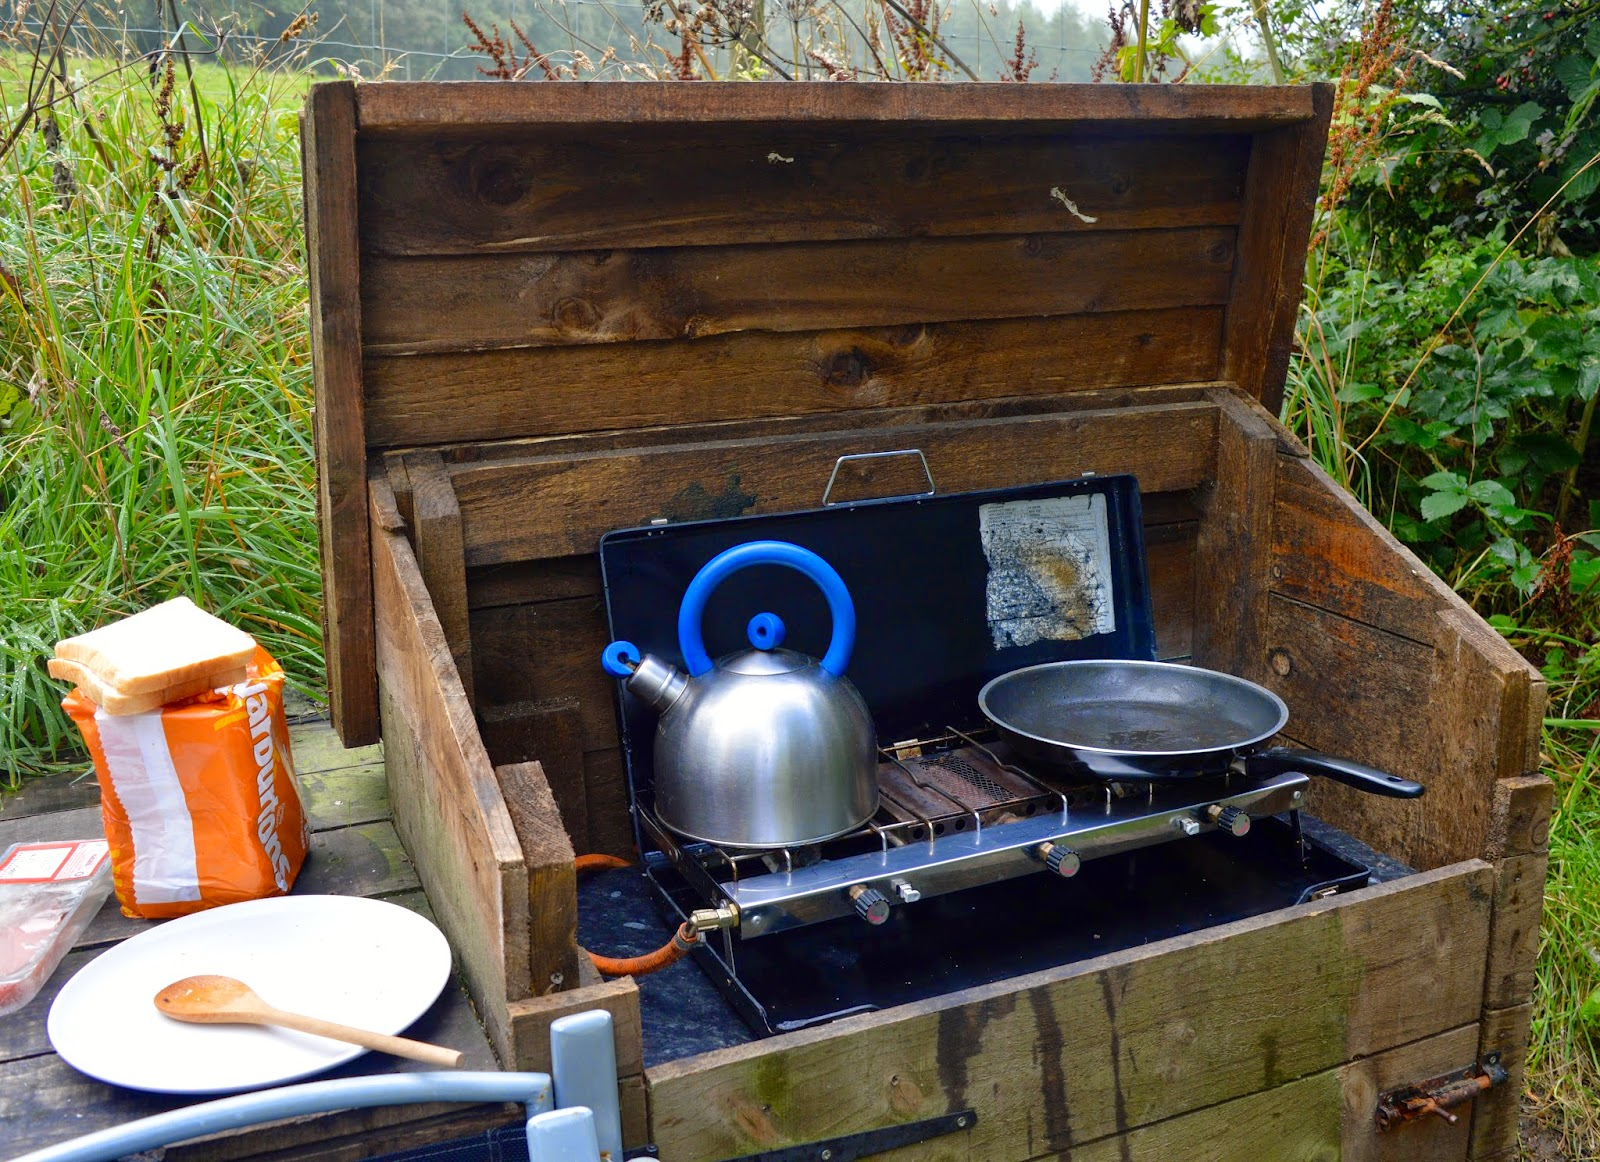 Westwood Yurts | Glamping at National Trust Gibside, County Durham - A Review - outdoor stove/BBQ